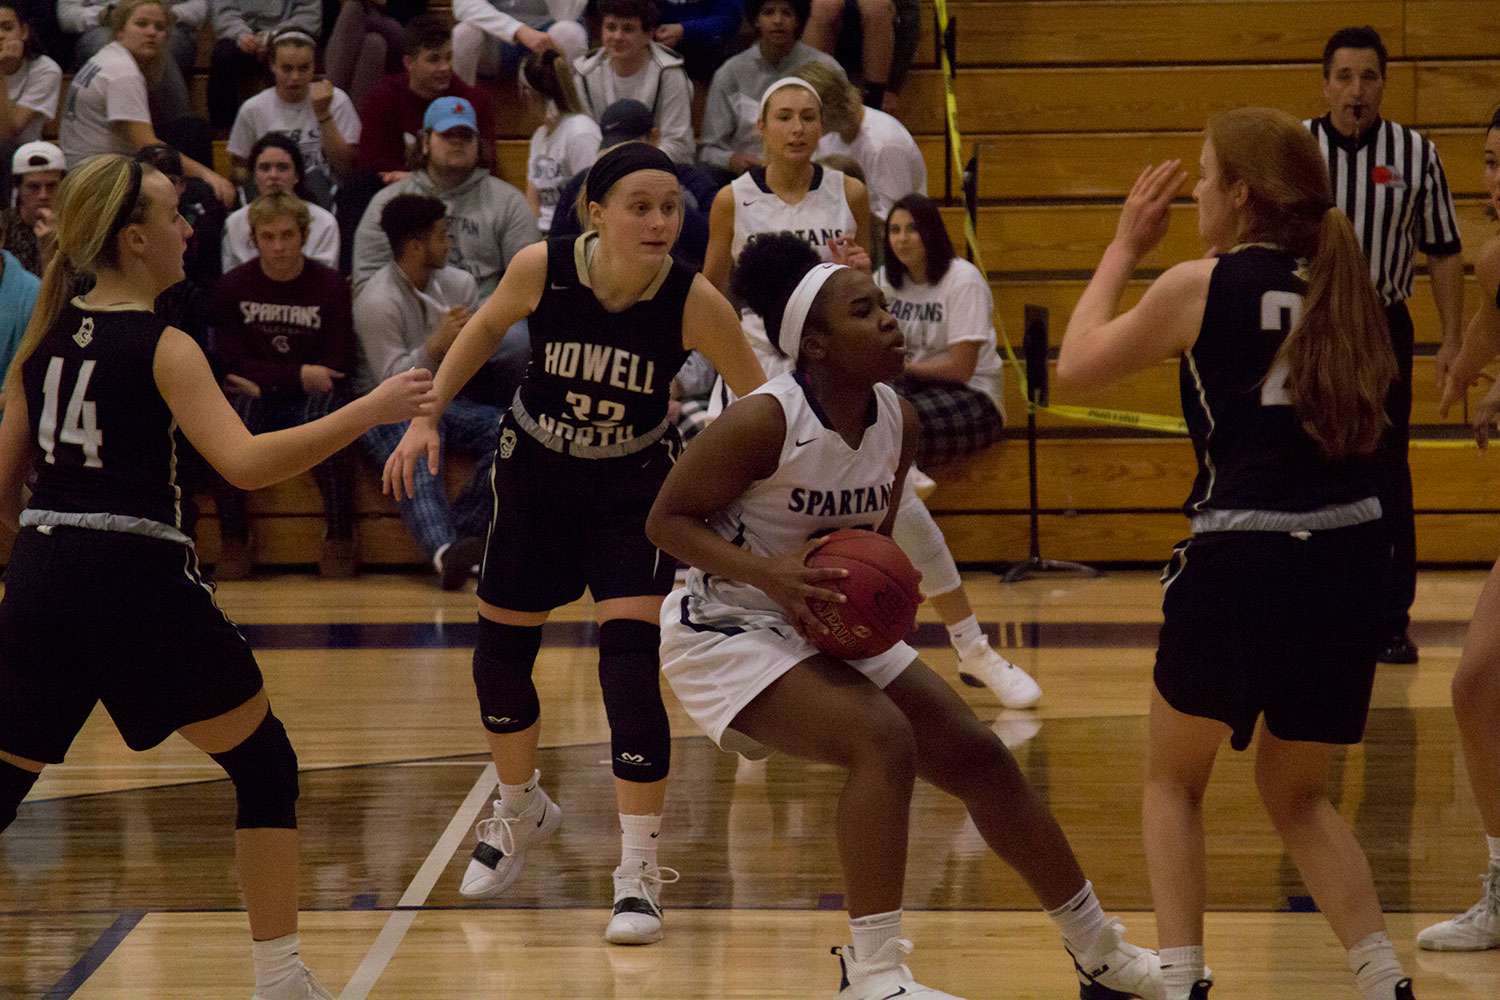 Azaria Hulbert drives to the hoop against four defenders. The Spartan offense has been dominant so far this season.